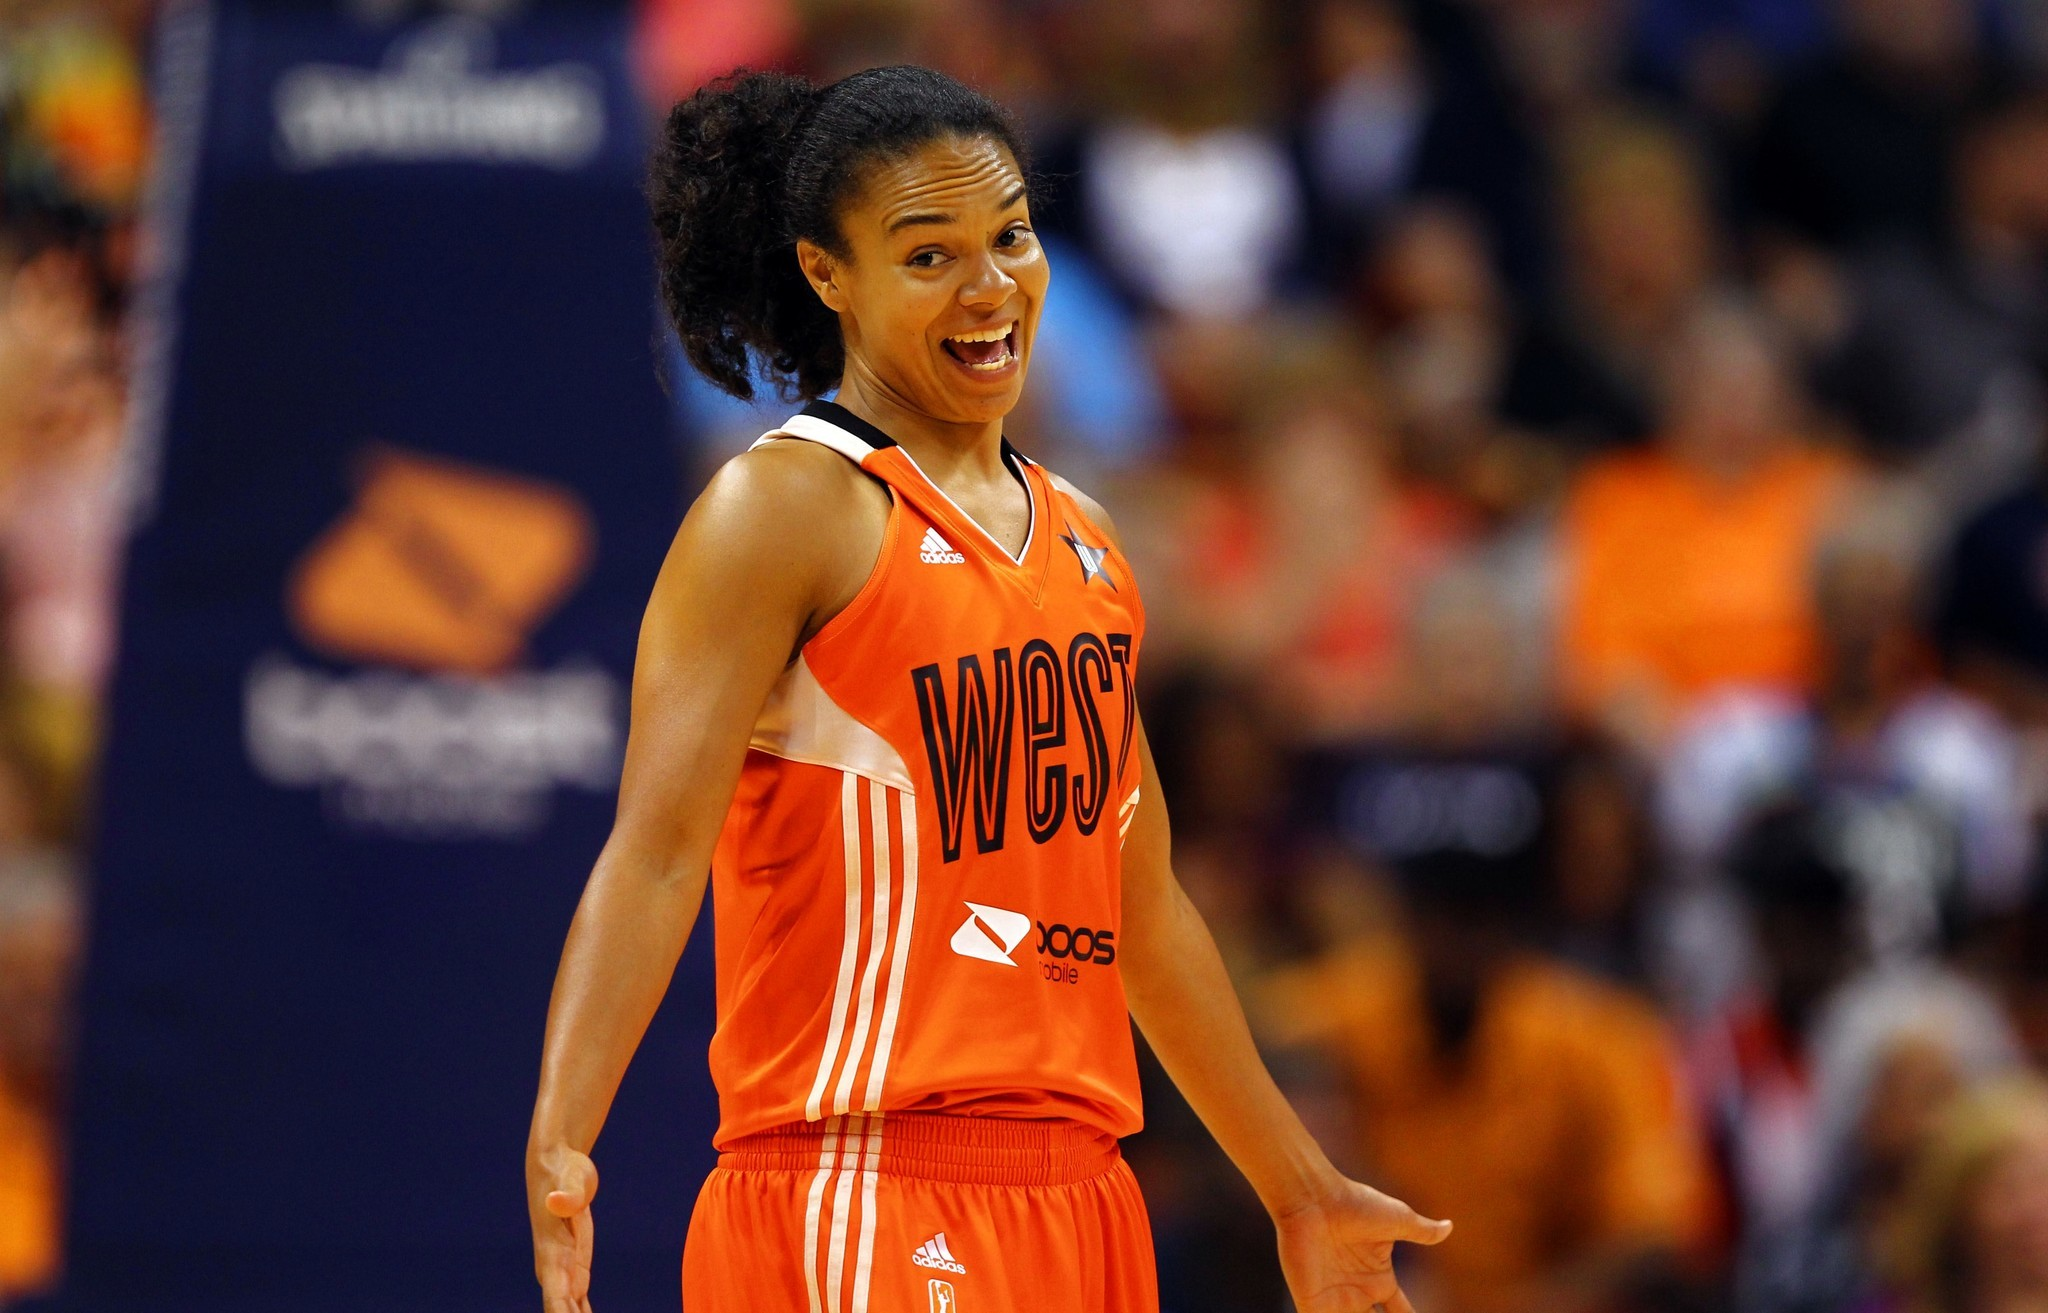 Former Maryland guard Kristi Toliver reportedly signs with Washington Mystics - Baltimore Sun